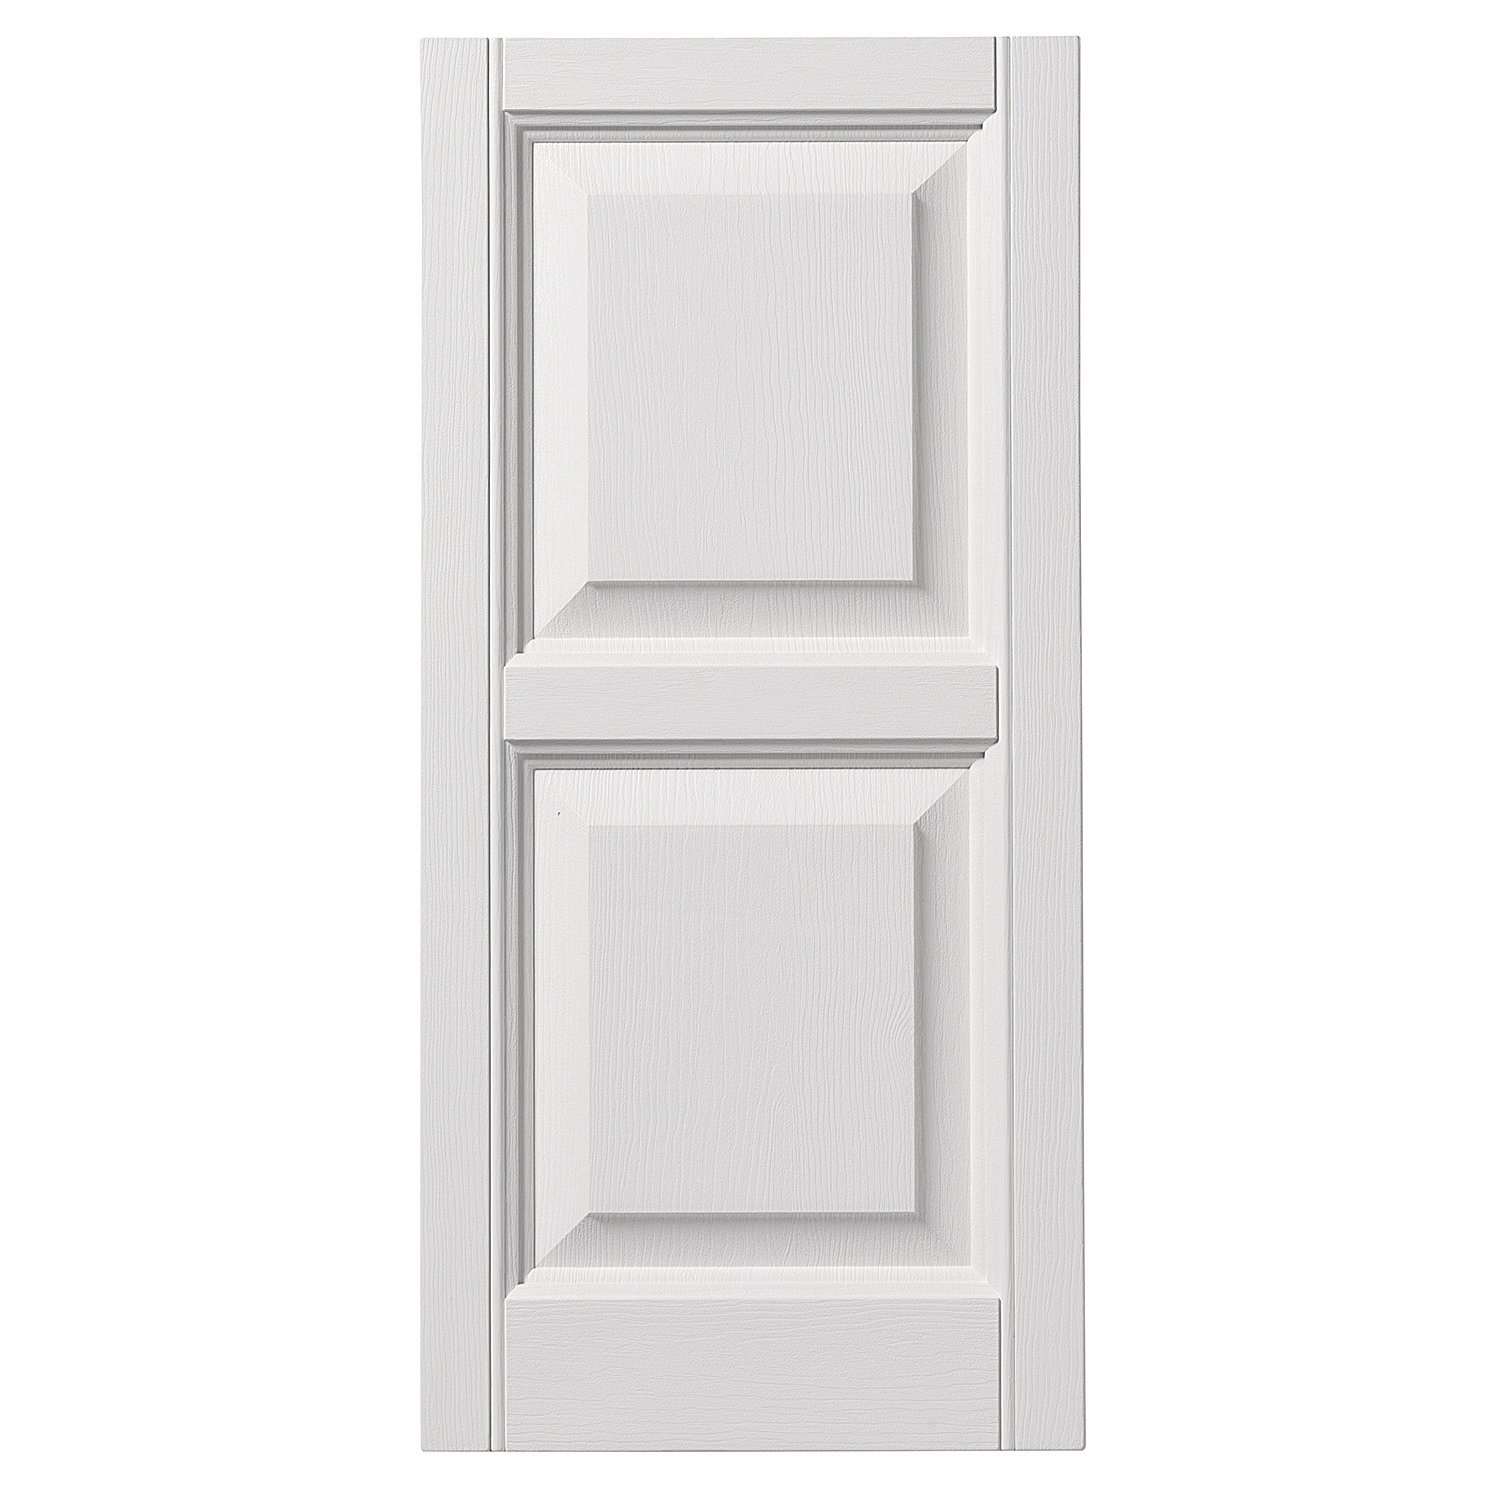 Ply Gem Shutters and Accents VINRP1239 11 Raised Panel Shutter, 12'', White